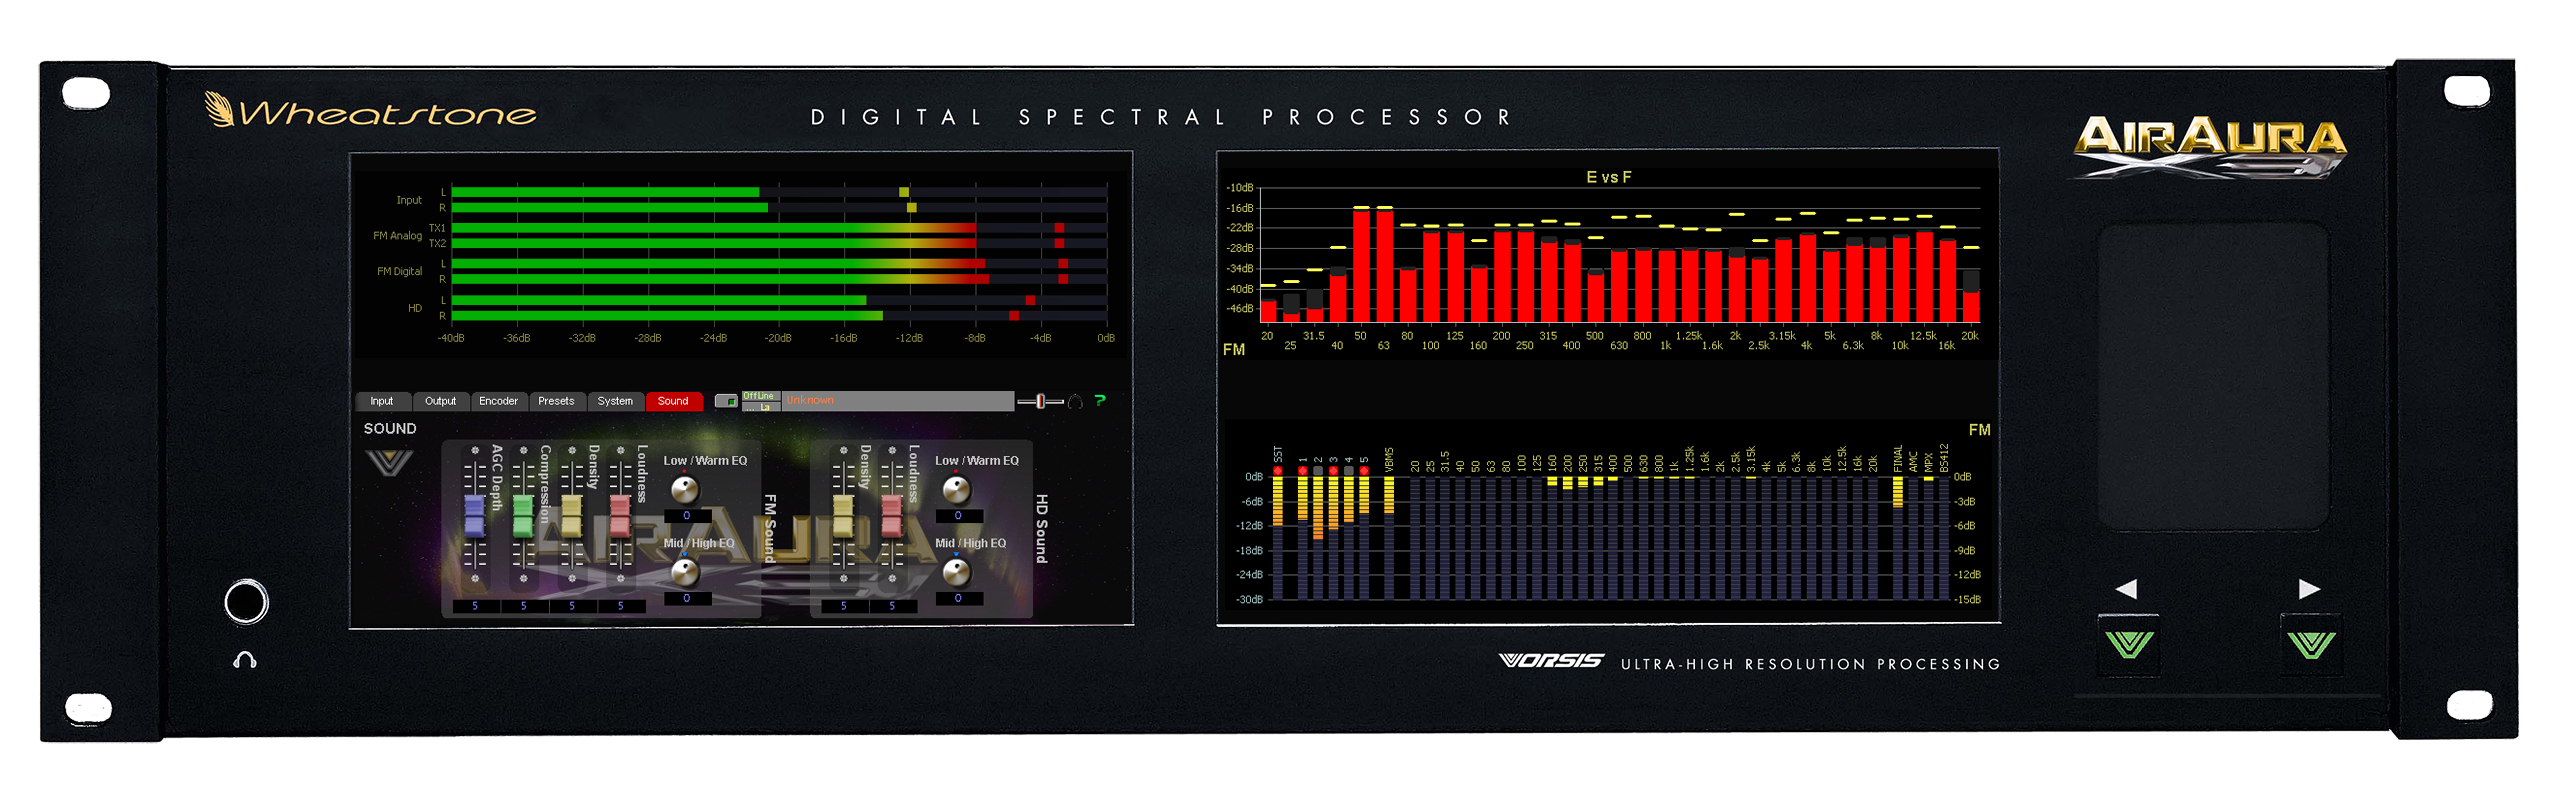 Wheatstone Adds HD/FM Time Alignment to AirAura X3 Processor!